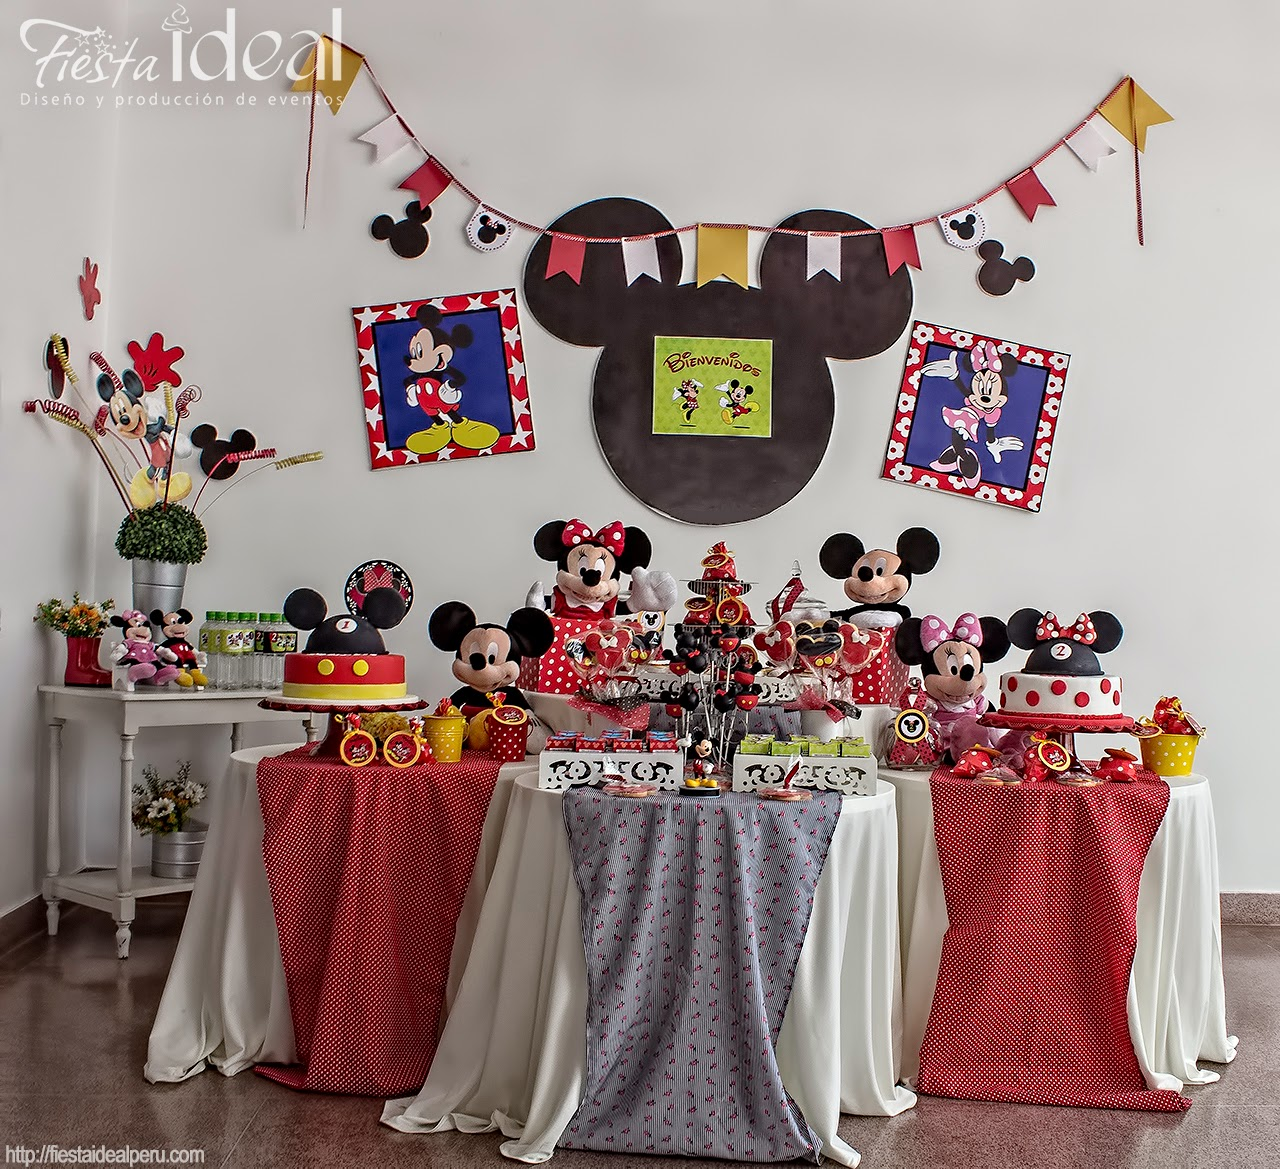 Fiesta ideal peru decoraci n fiesta cumplea os mickey y for Decoracion cumpleanos nino